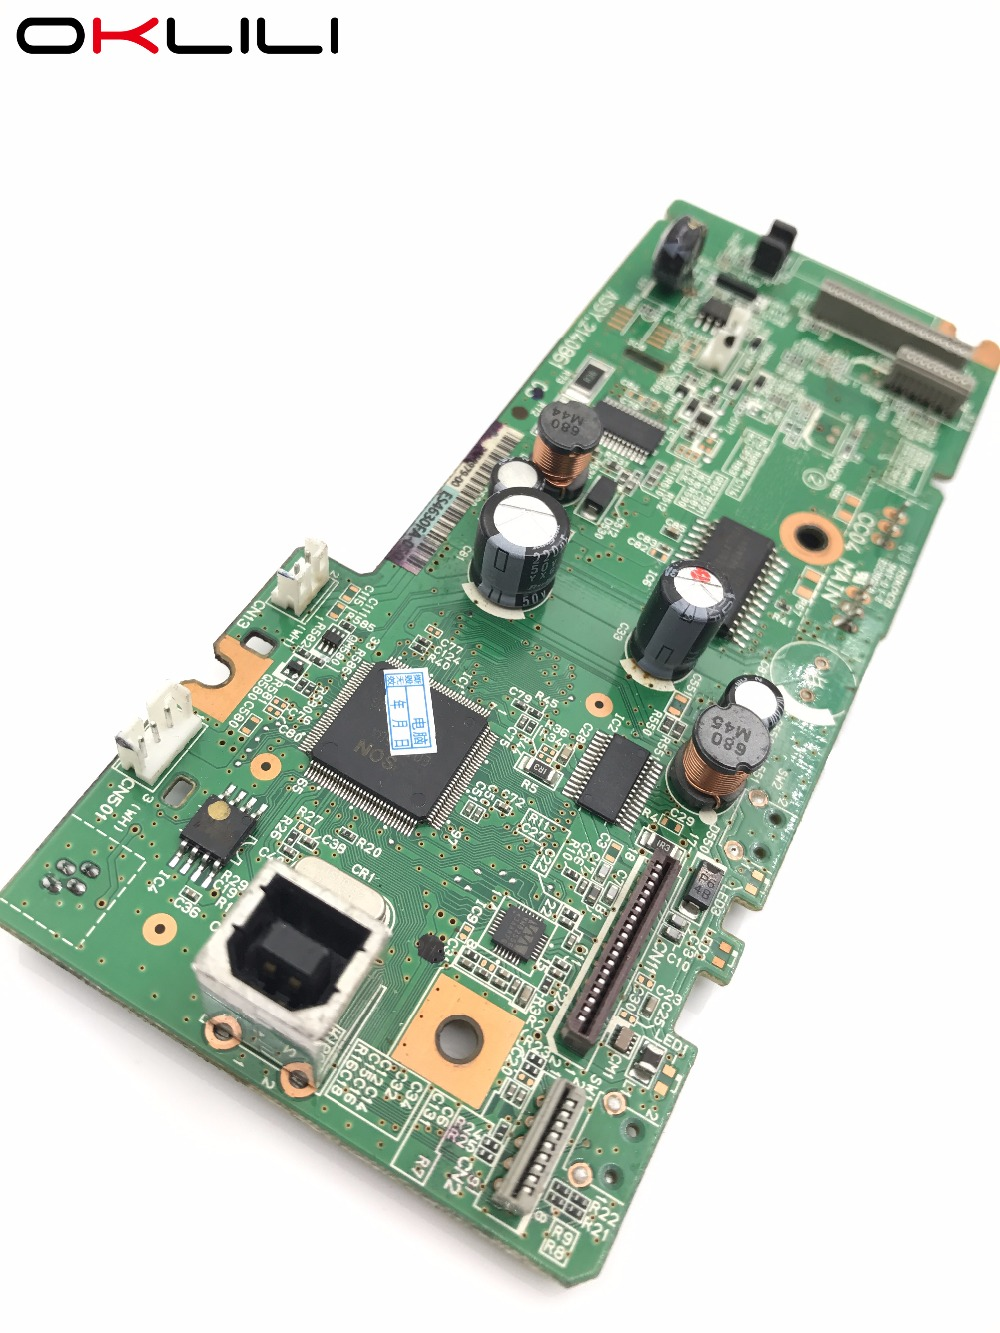 2140861 2158979 2140863 PCA ASSY Formatter Board logic Main Board MainBoard mother board for Epson L210 L211 L350 L382 formatter main board for epson l210 printer